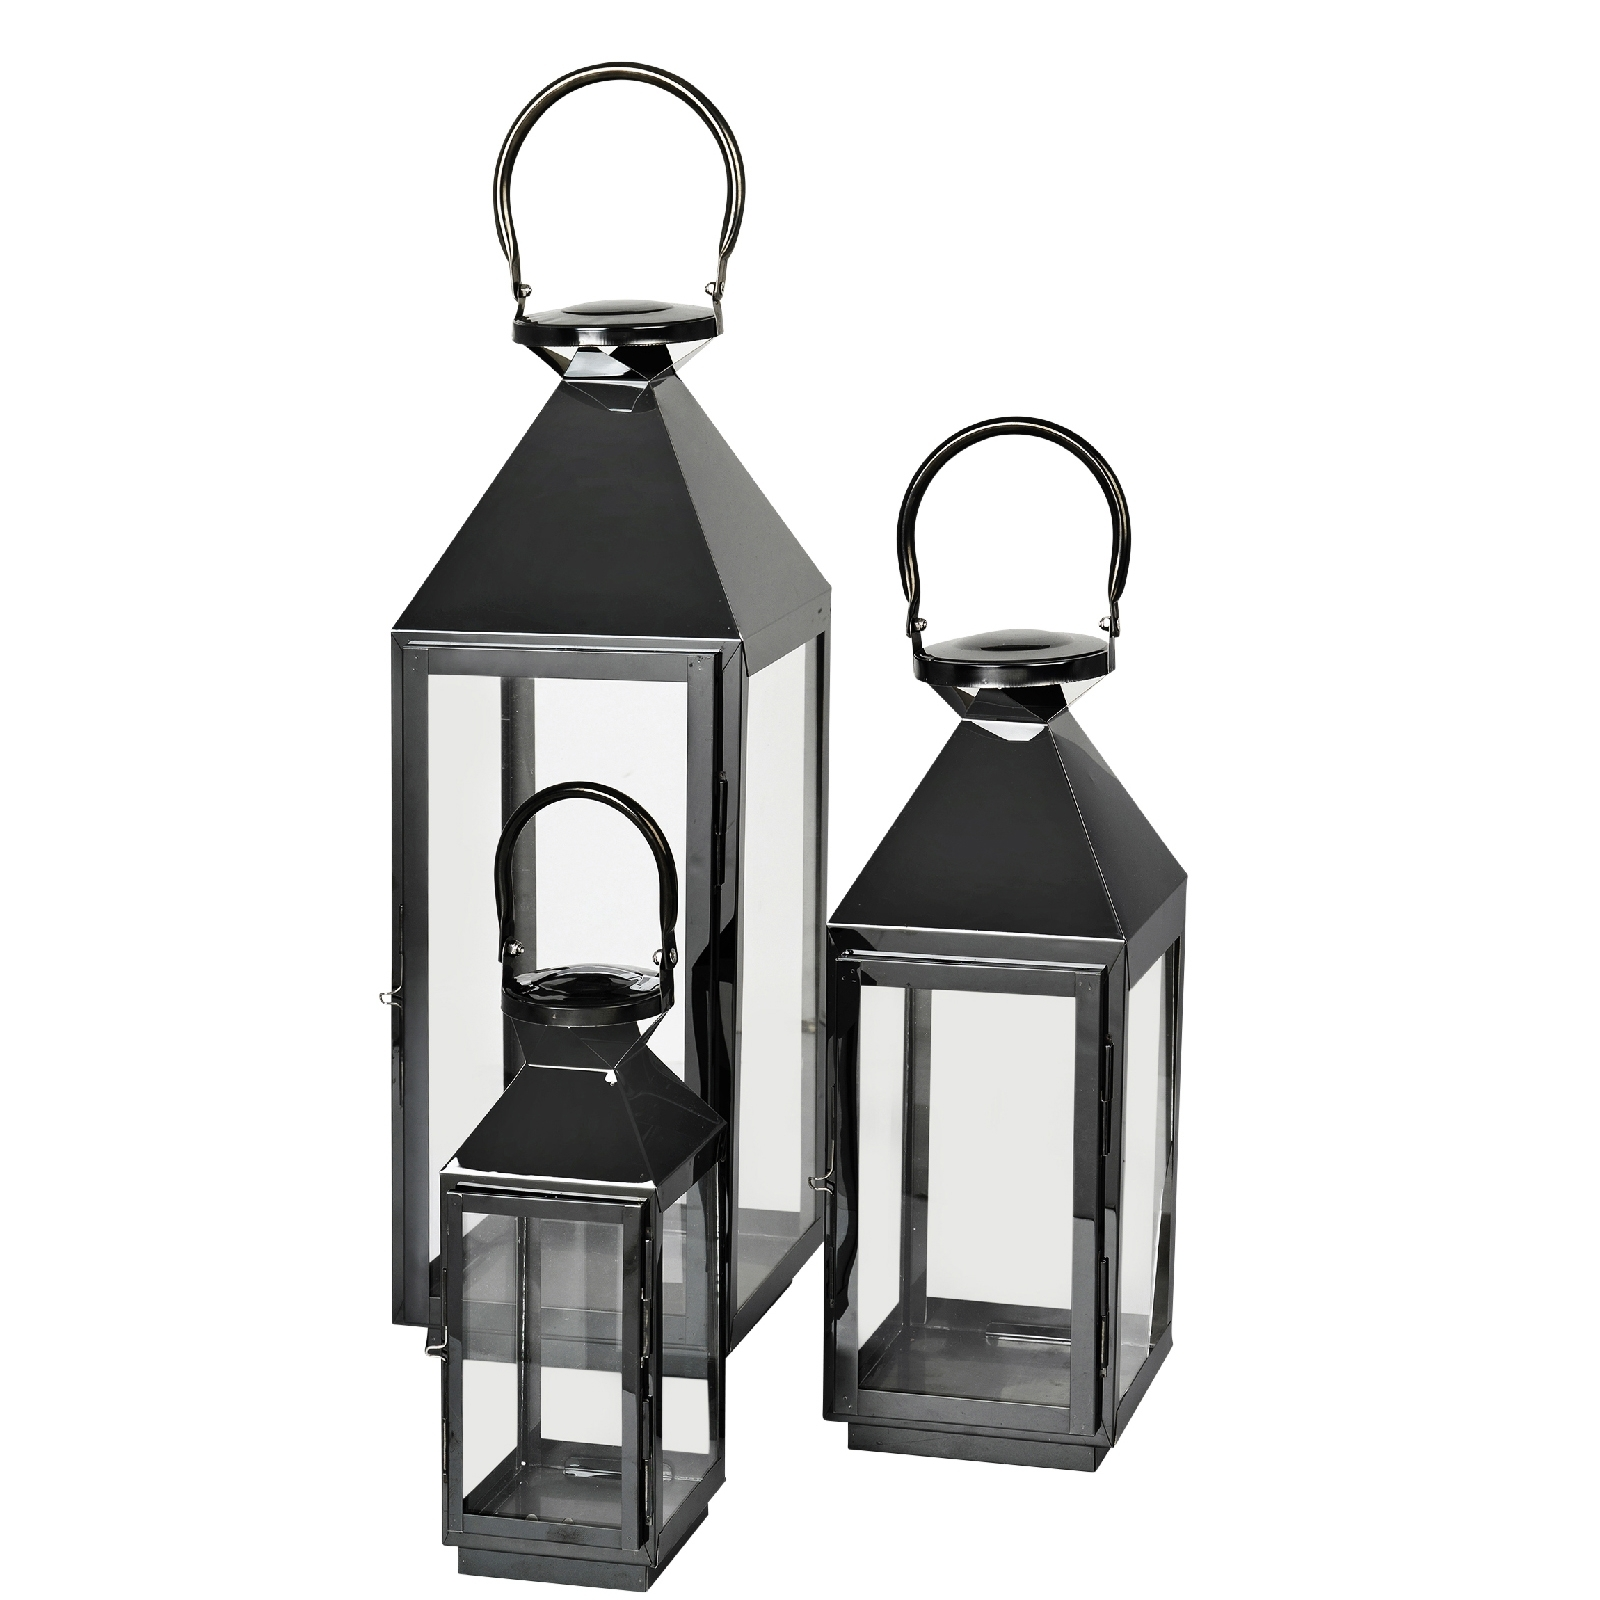 Broste Copenhagen Frit Outdoor And Indoor Lanterns – Black (Set Of 3 Throughout Set Of 3 Outdoor Lanterns (View 4 of 20)